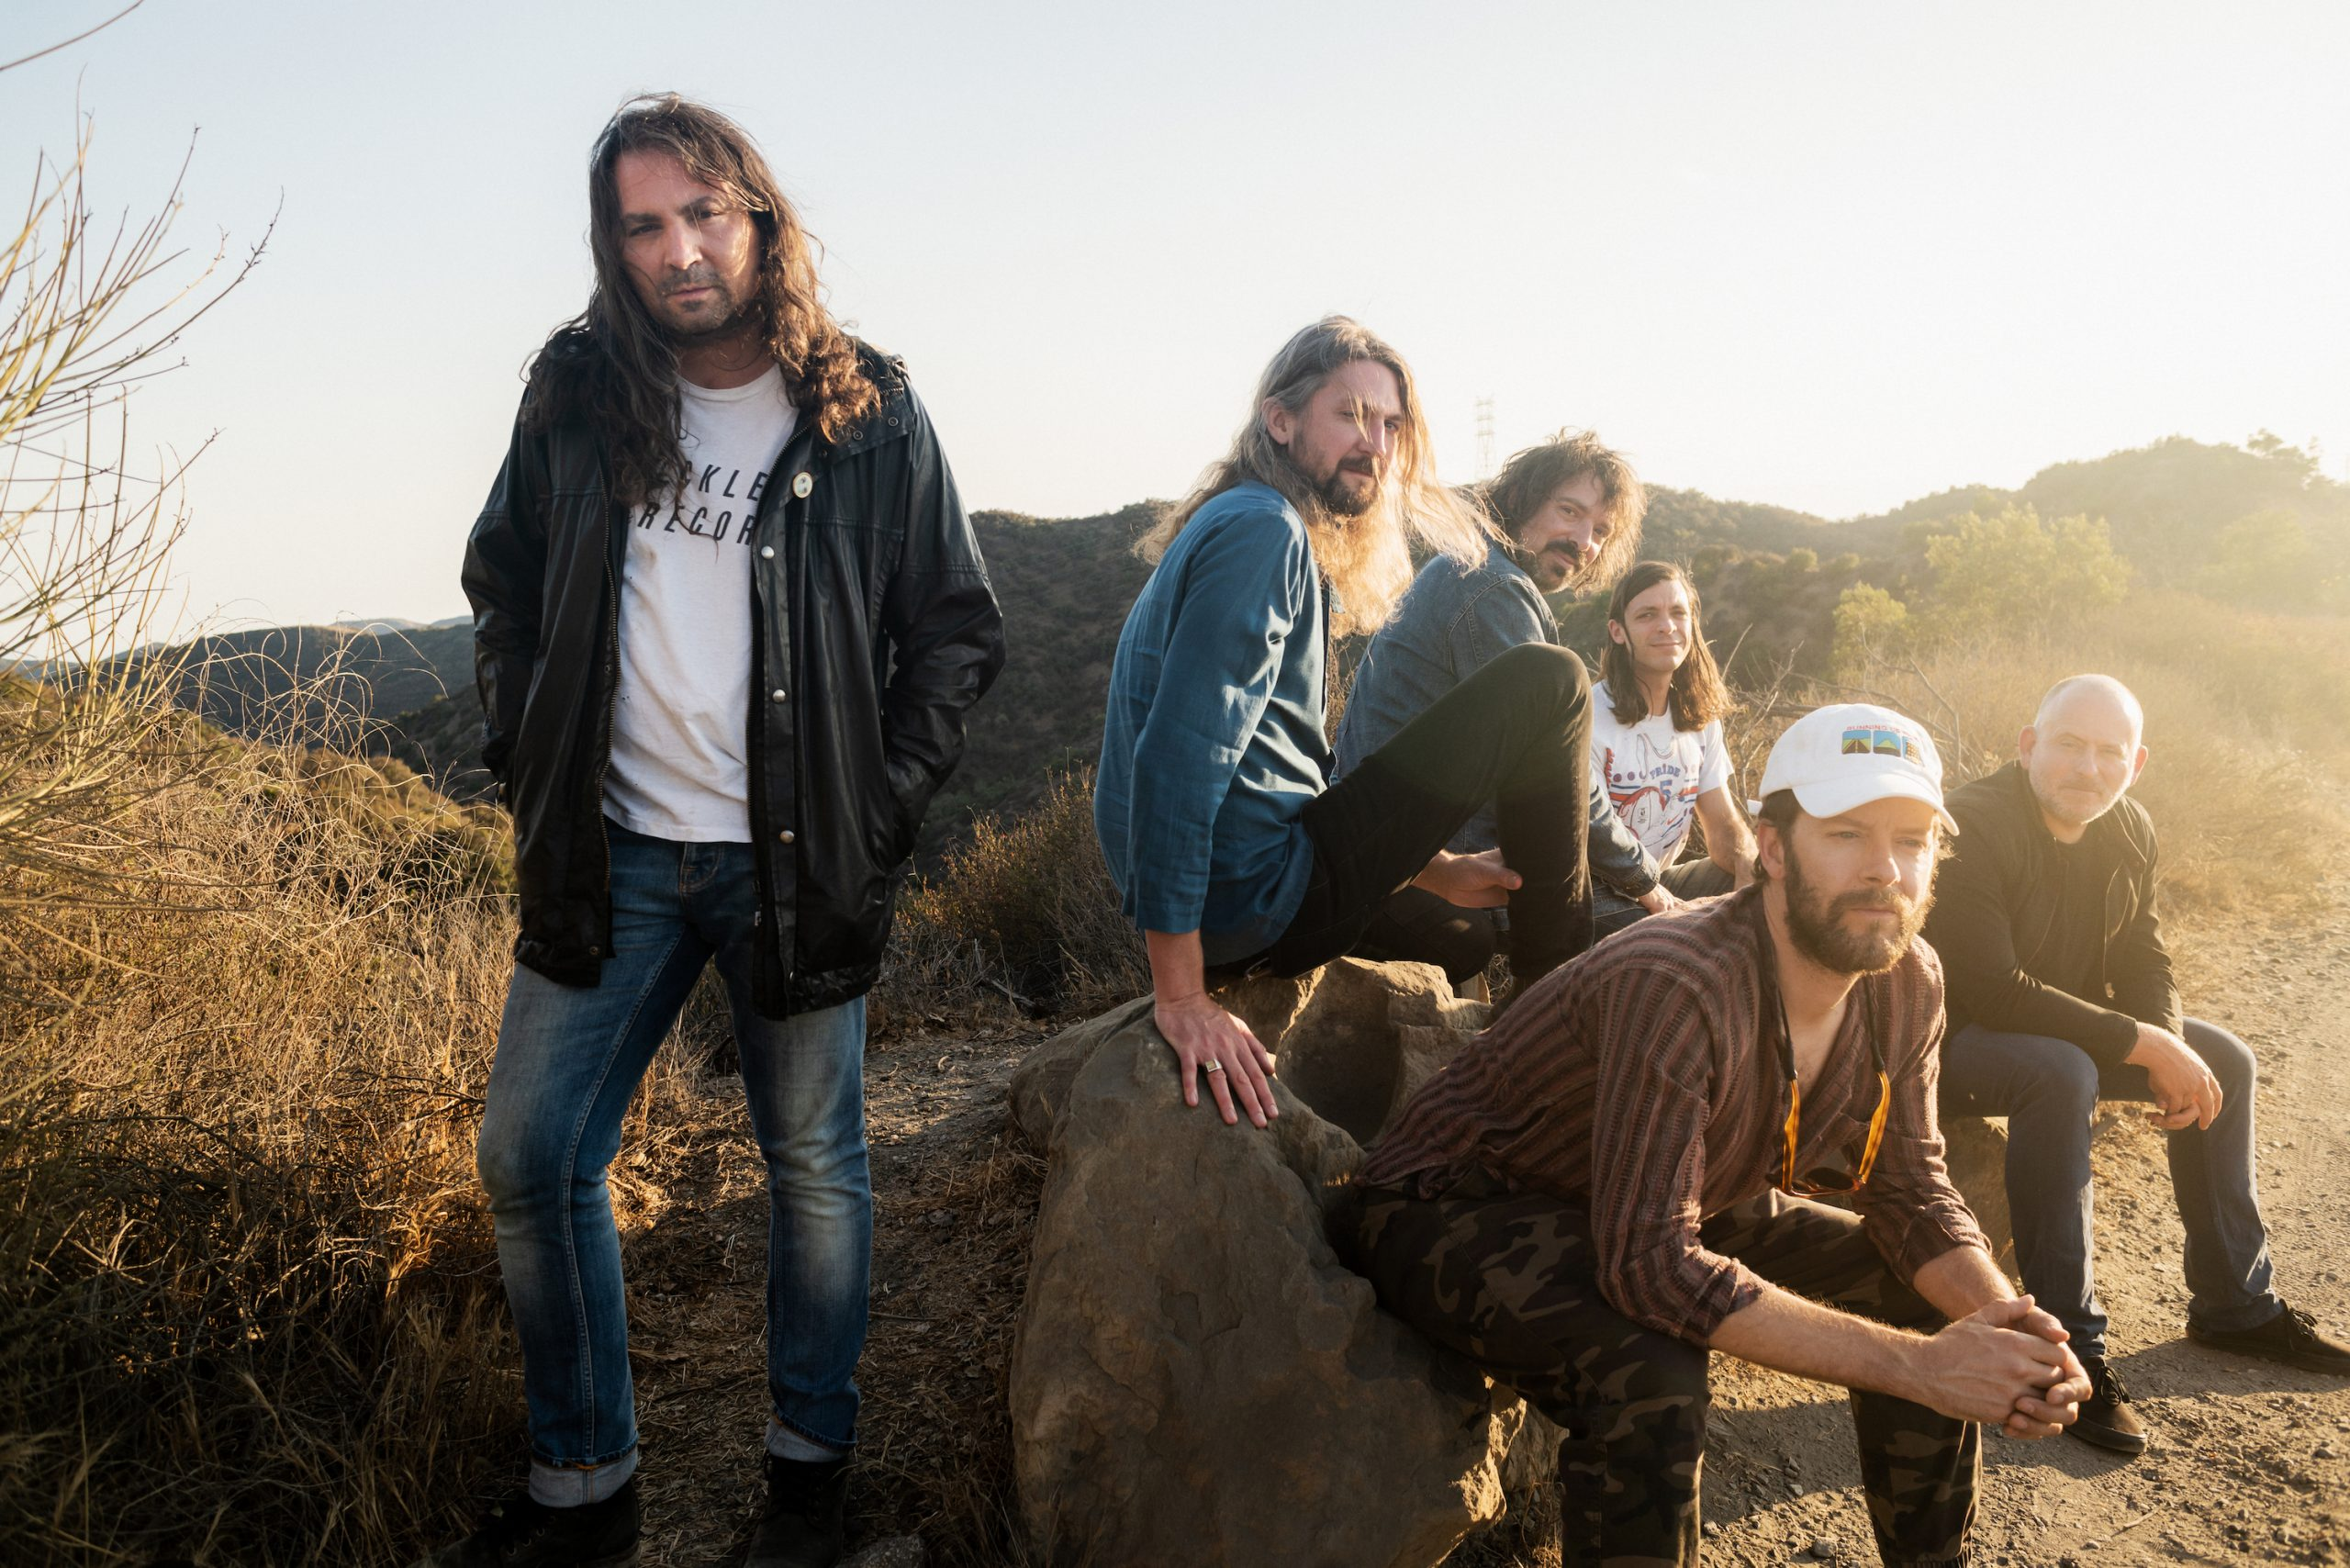 The War on Drugs Perform on a Rooftop in 'I Don't Live Here Anymore' Video